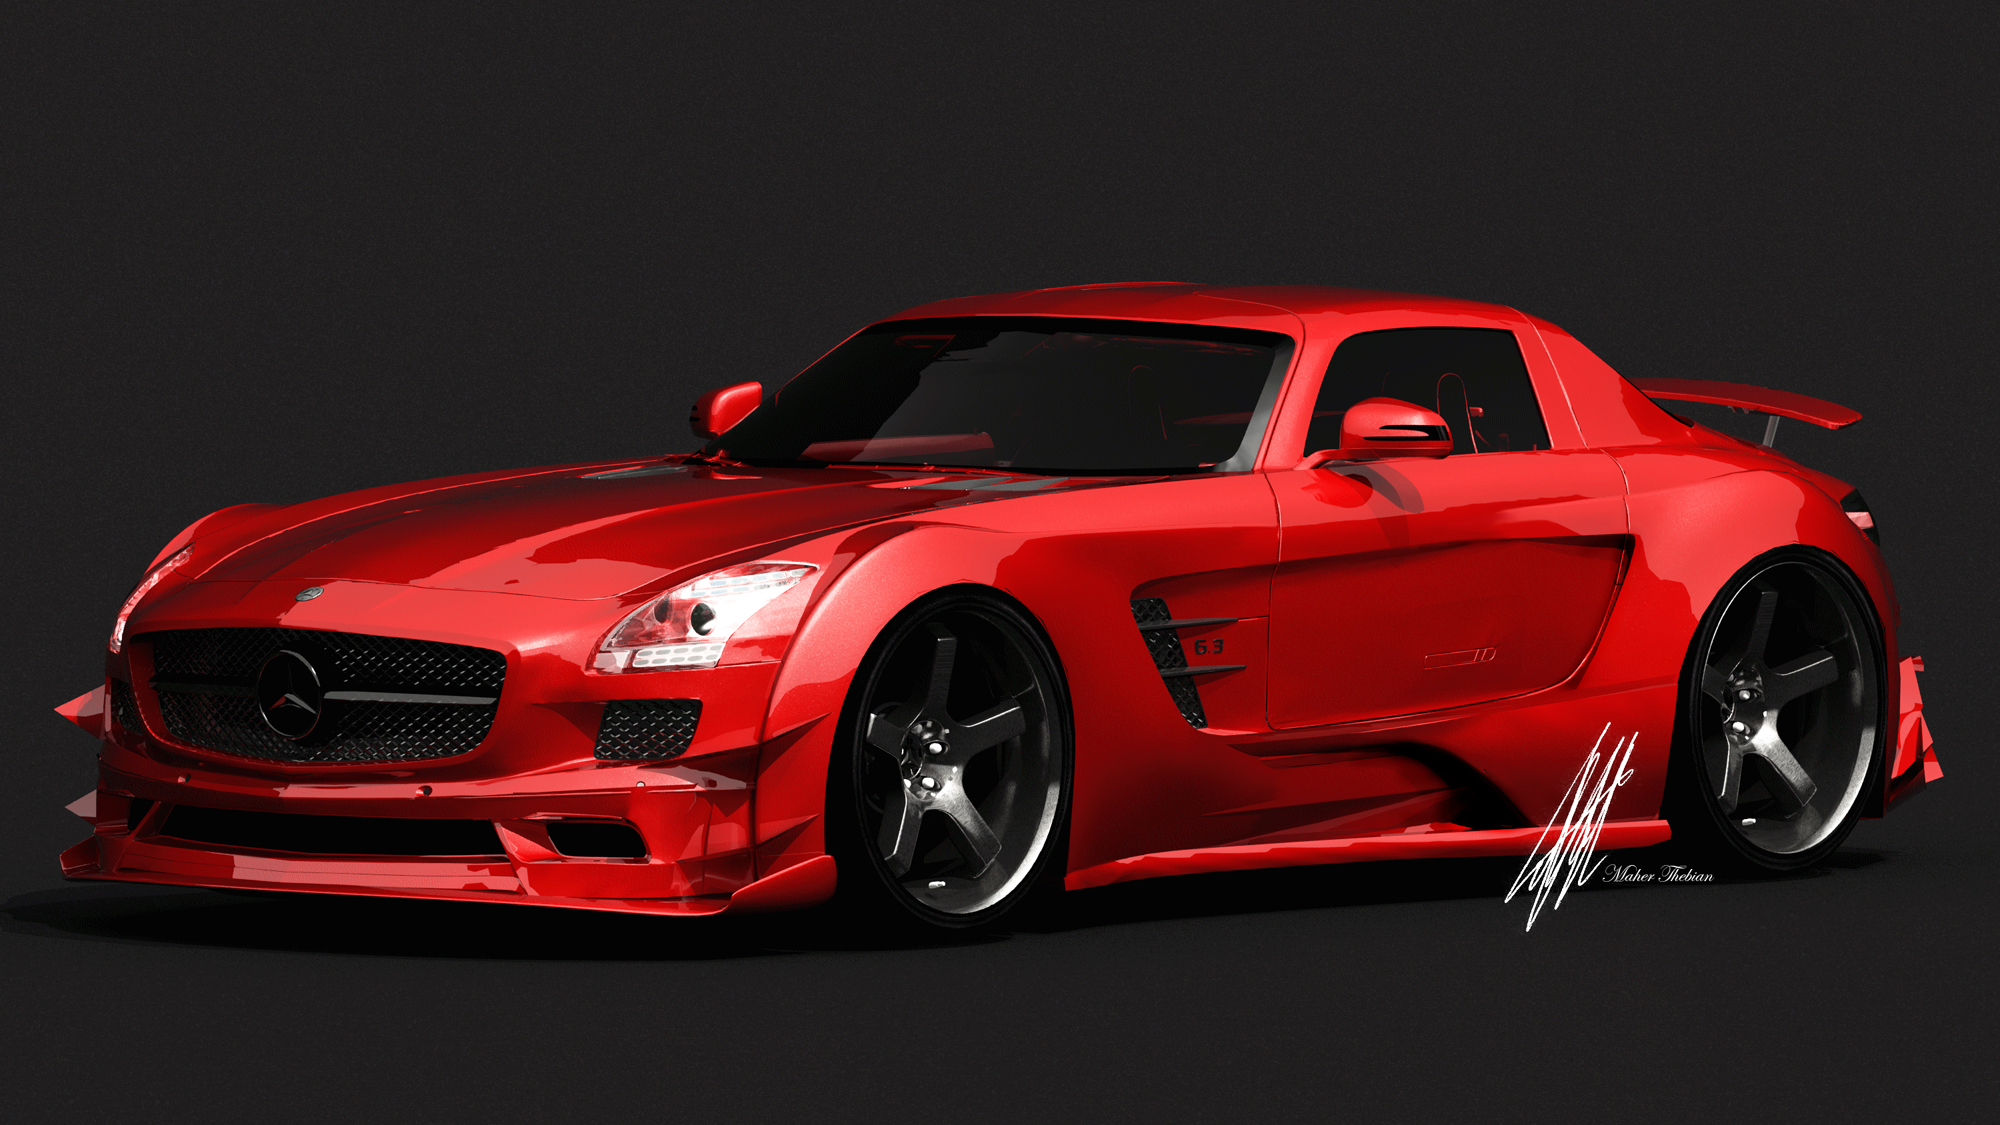 Red And Black Sports Cars 10 Desktop Background